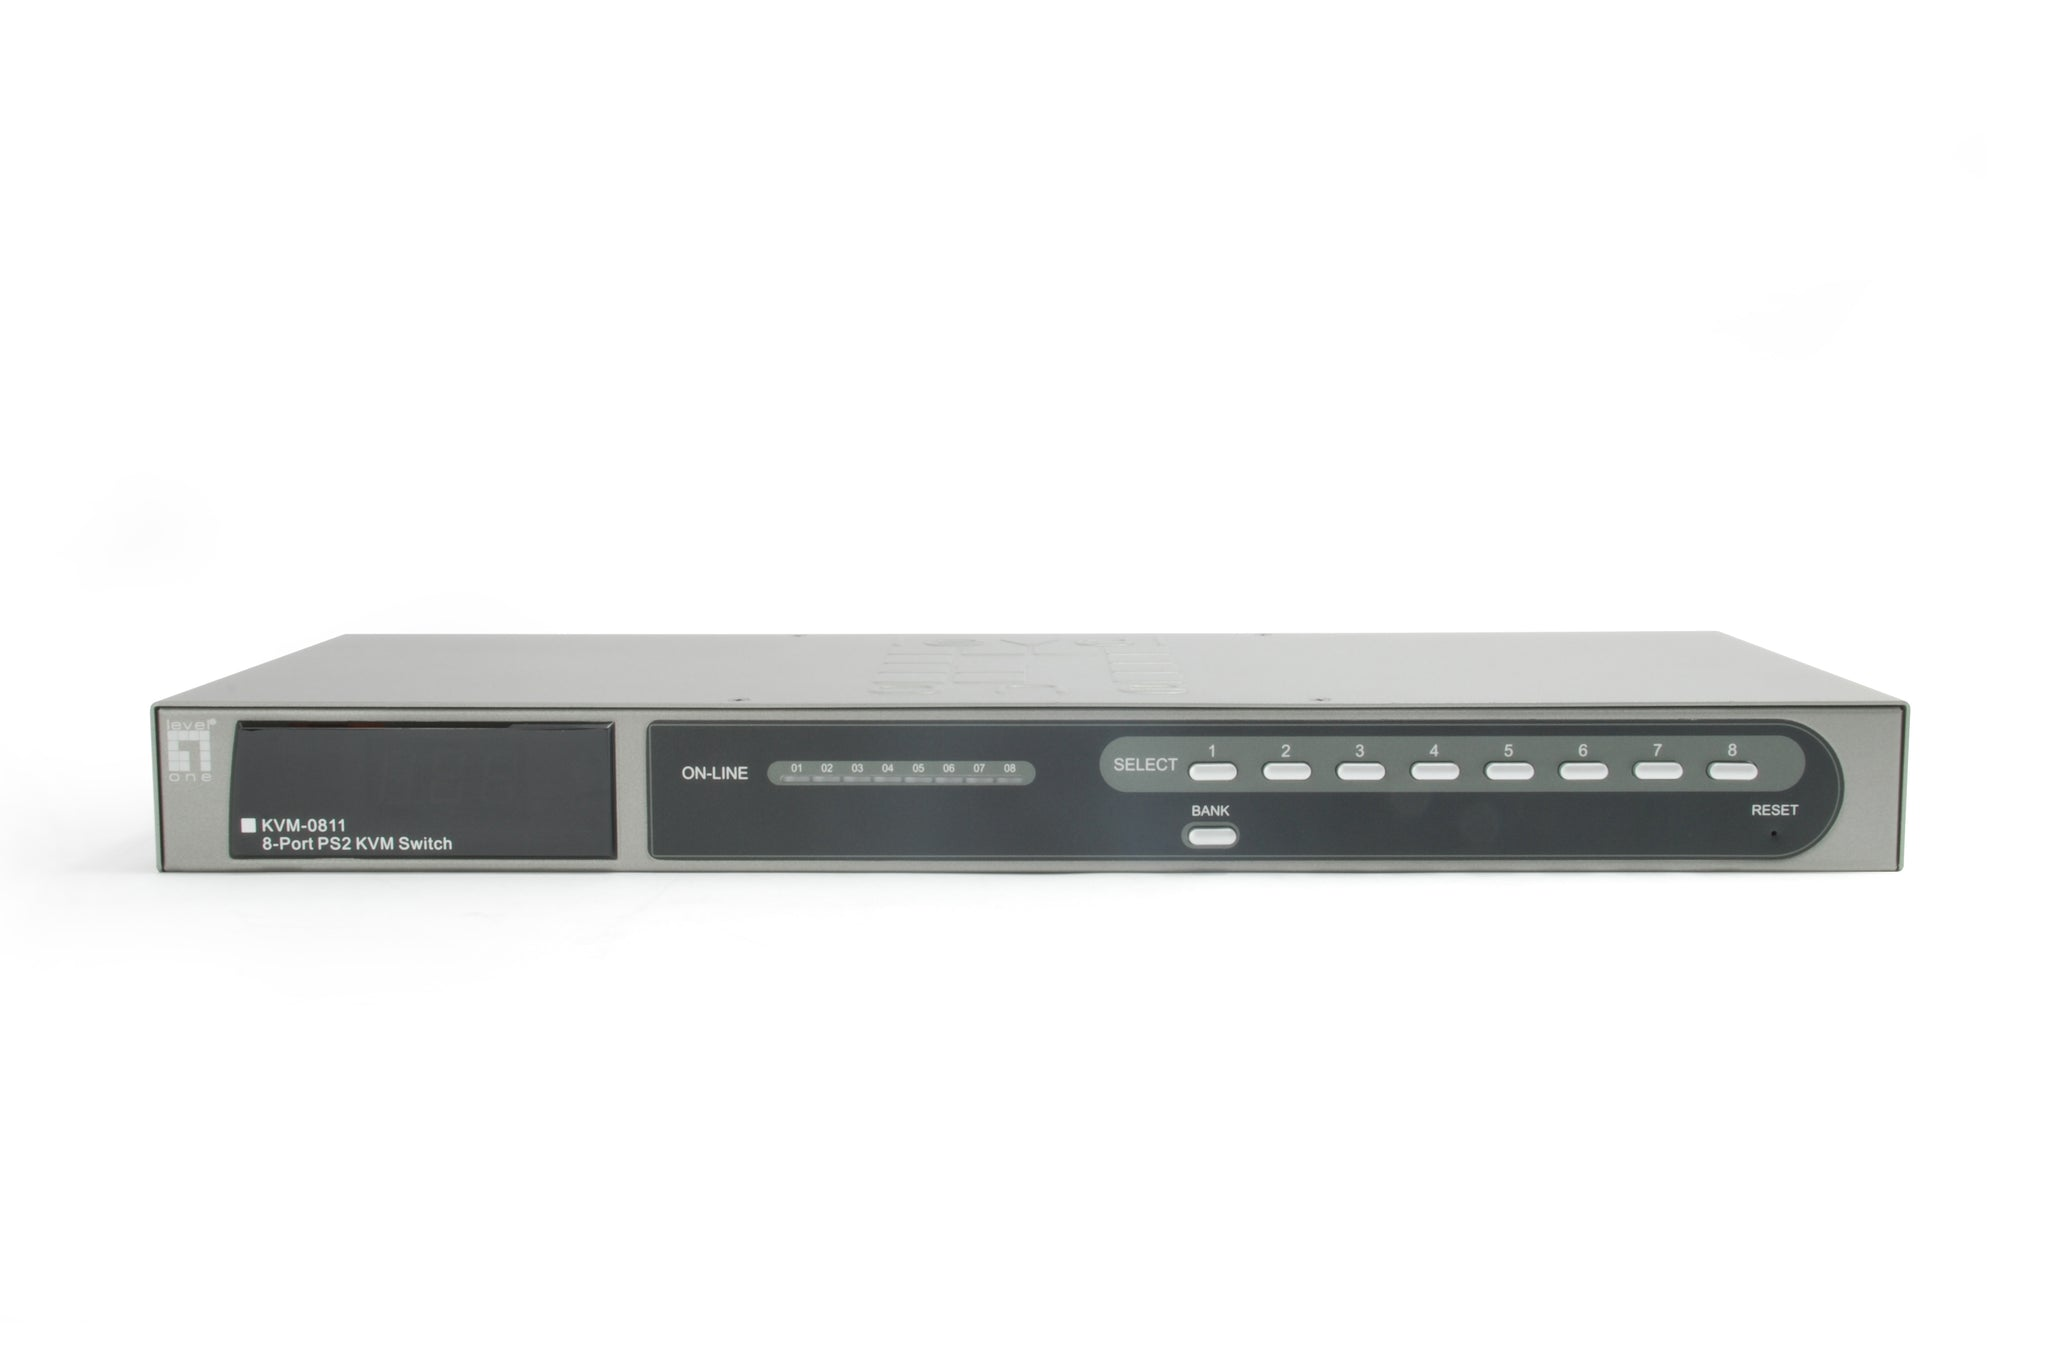 KVM-0811 8-PORT PS/2 KVM SWITCH